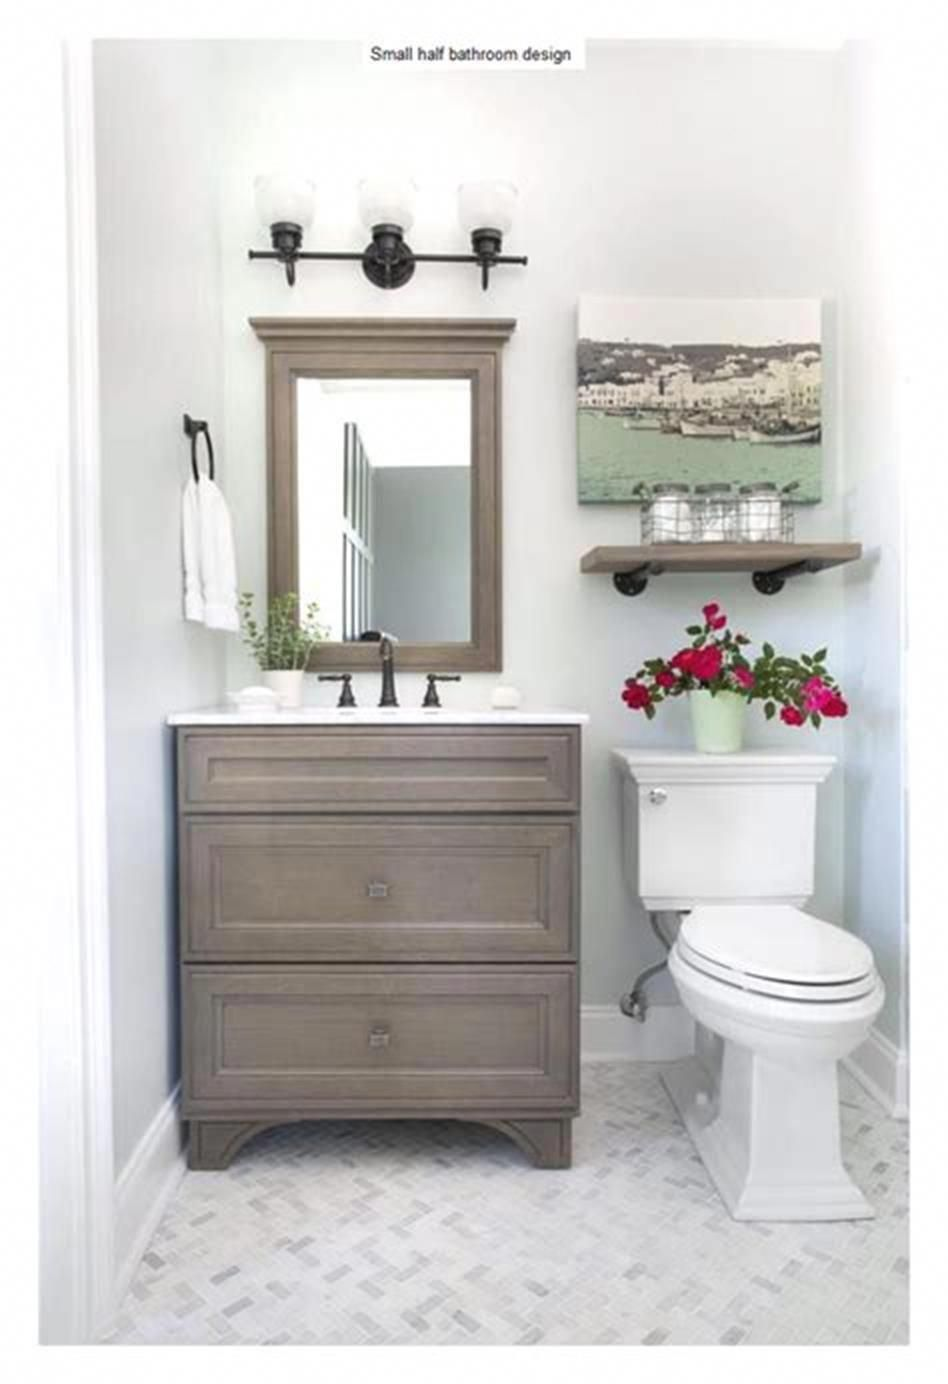 12 Diy Bathroom Decor Ideas On A Budget You Can T Afford To Miss Out On Guest Bathroom Small Half Bathroom Small Bathroom Remodel